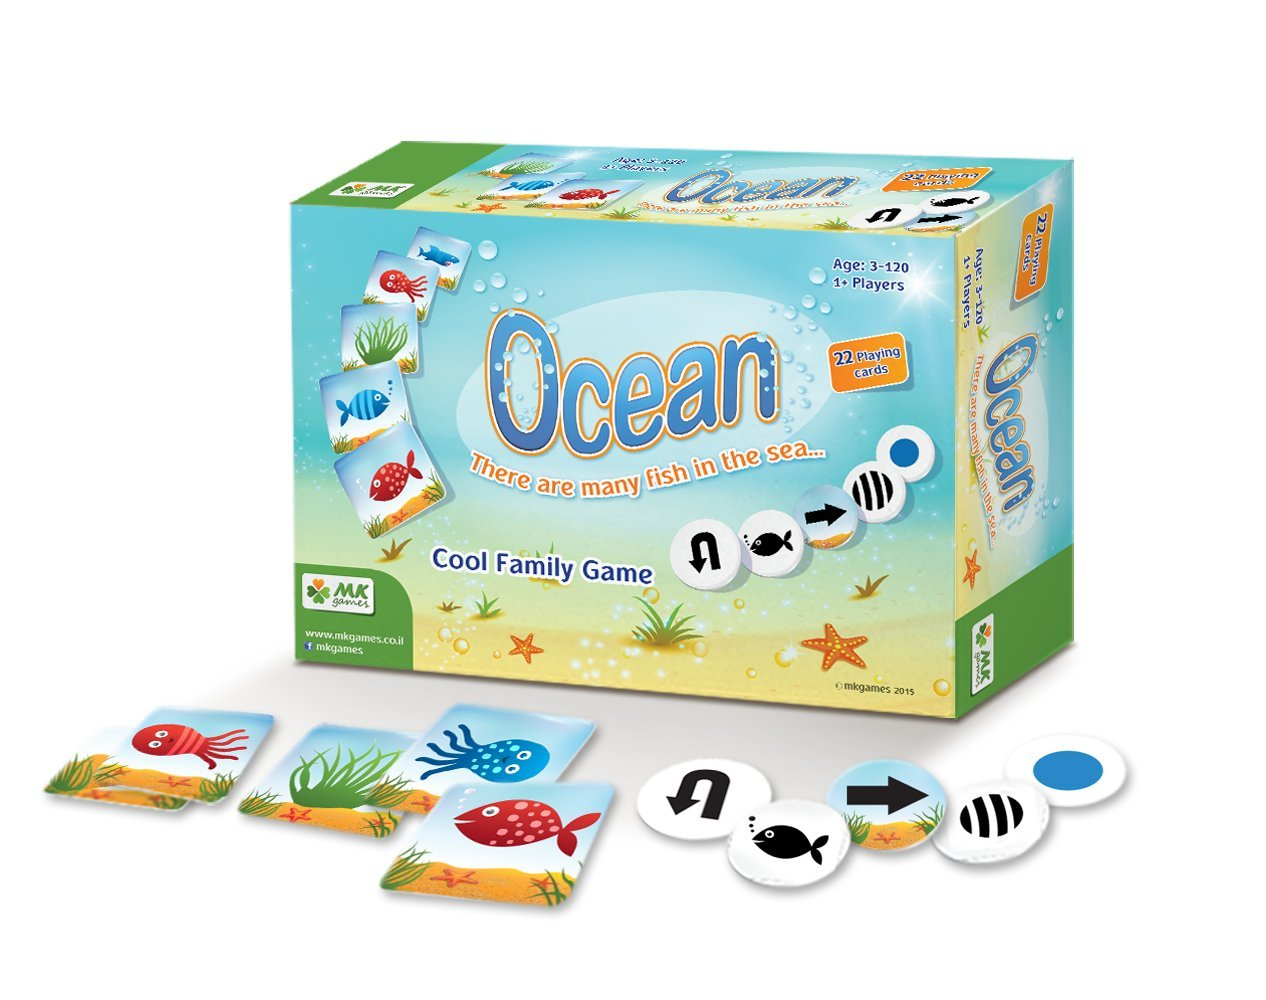 MKgames Educational family card game - Ocean. Develops cognitive & learning skills: visual perception, memory more. Kids age 3+. Ideal Professional Toolkit